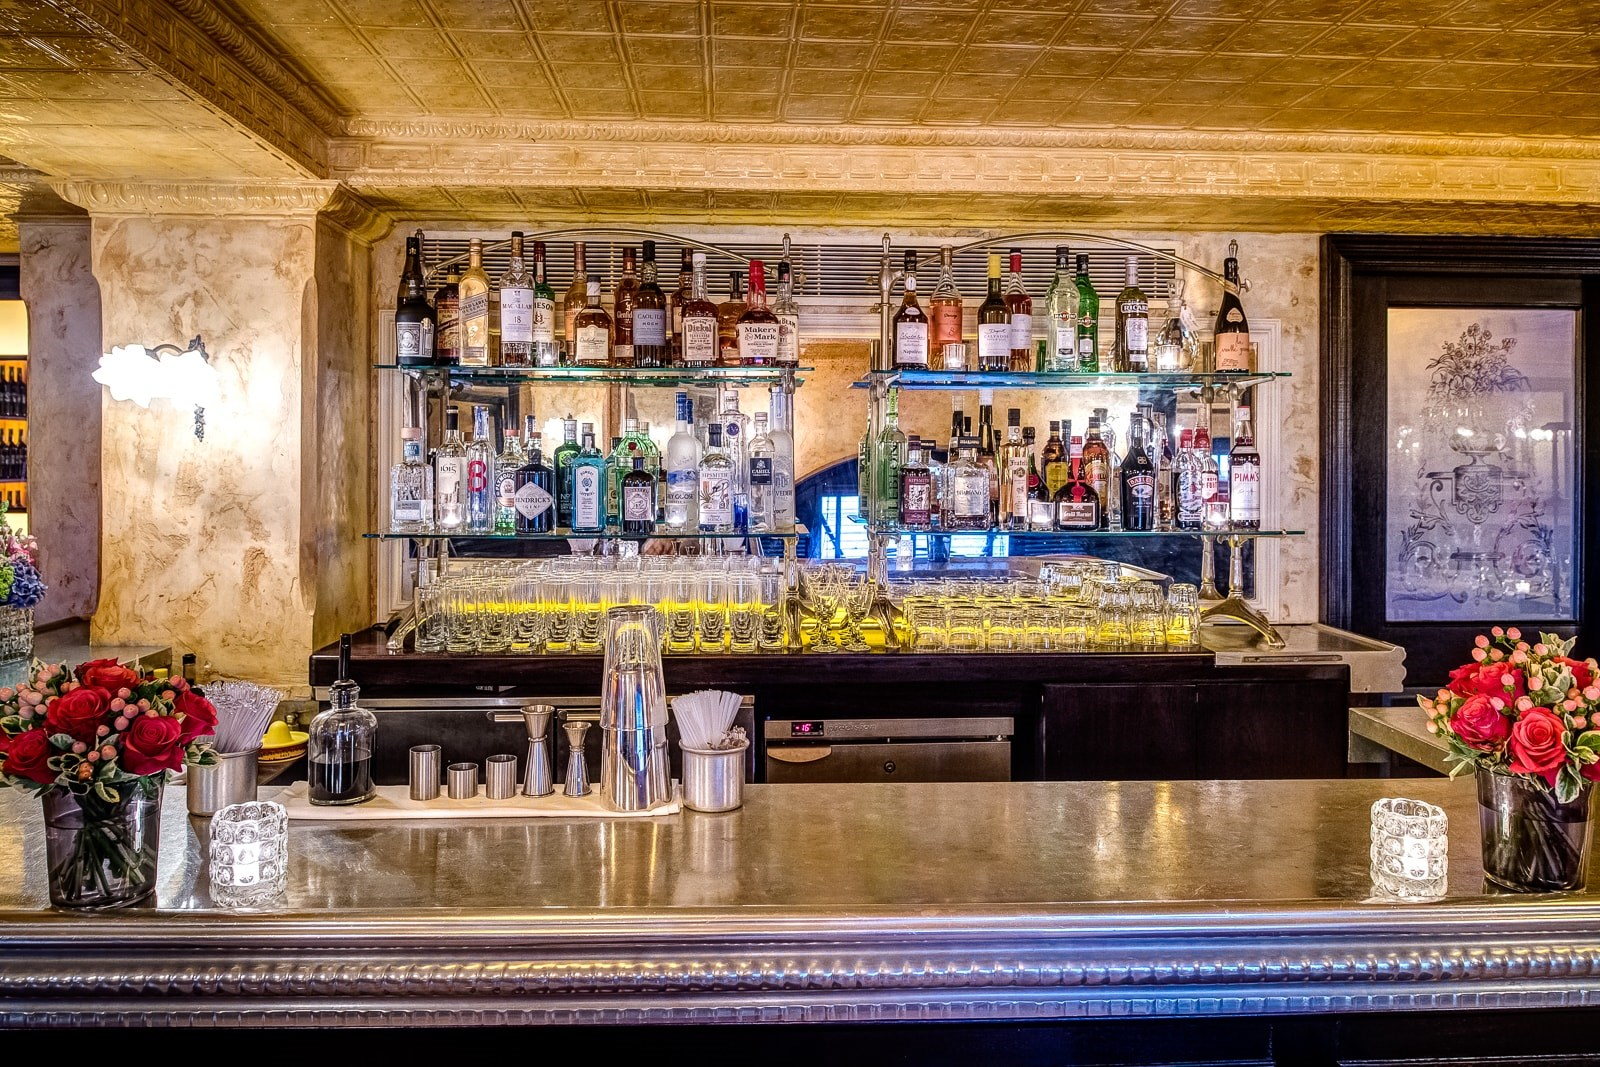 The Private Dining Room at Balthazar in Covent Garden has a Private Bar.